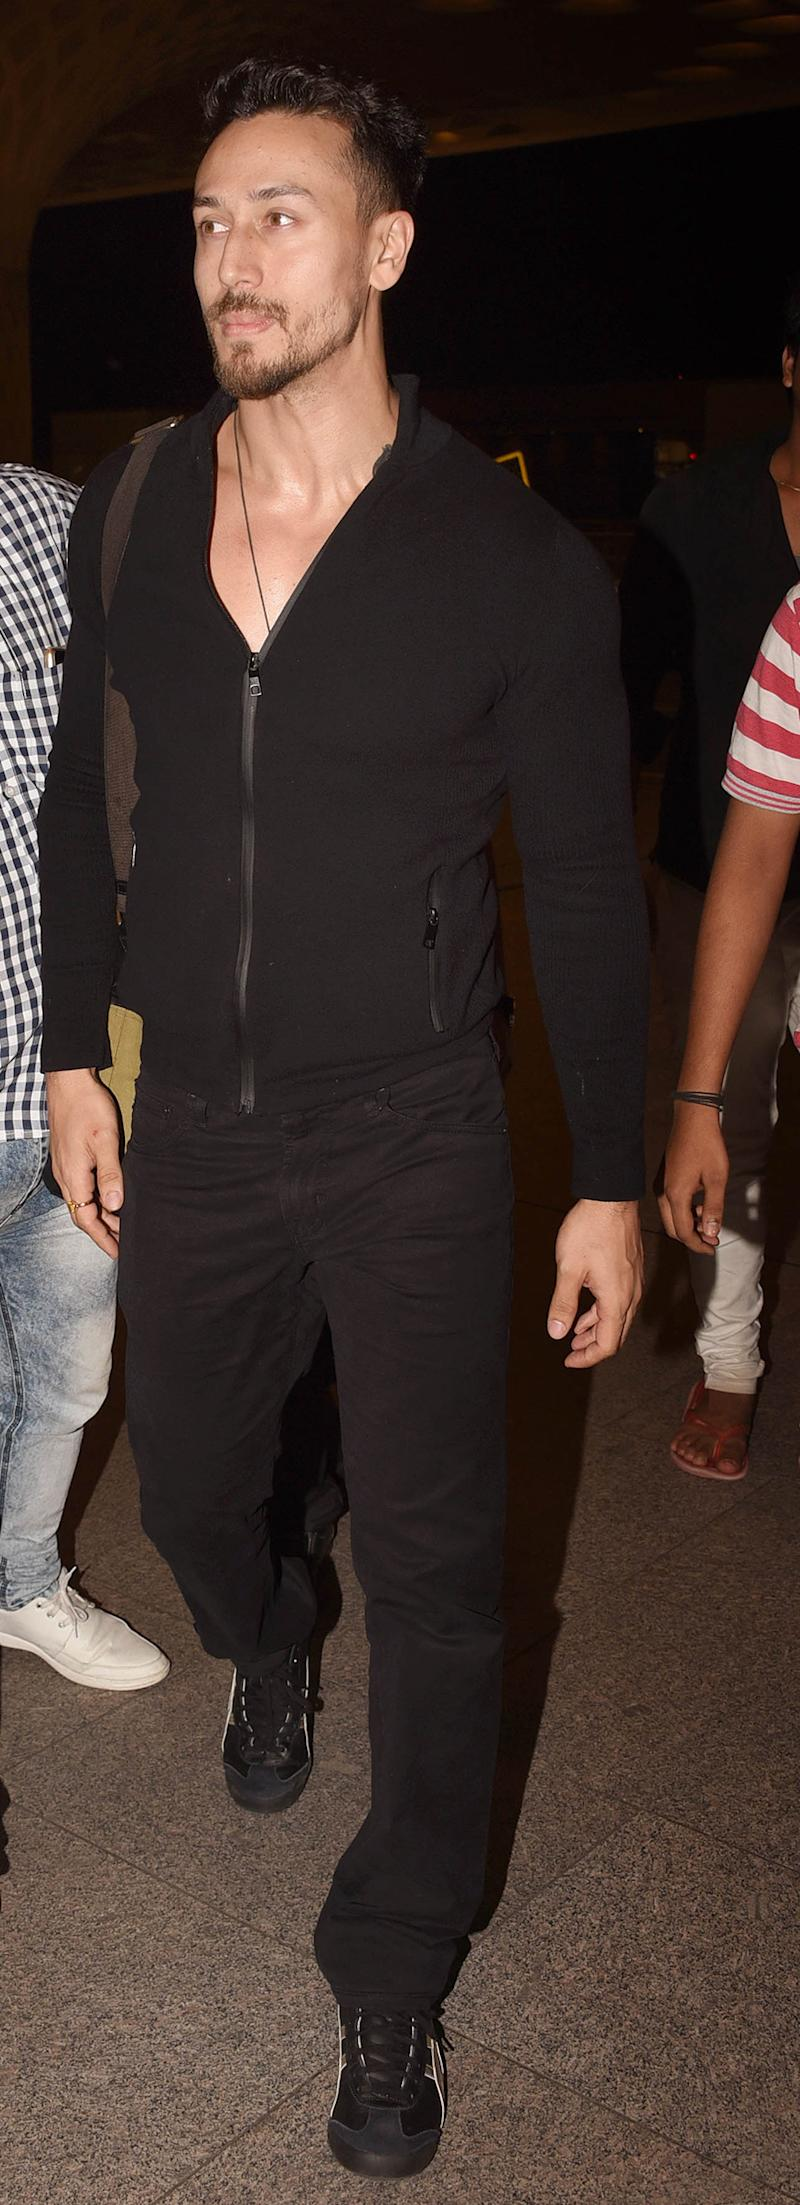 Tiger Shroff snapped at Mumbai airport while leaving for Sri Lanka. (Image: Yogen Shah)